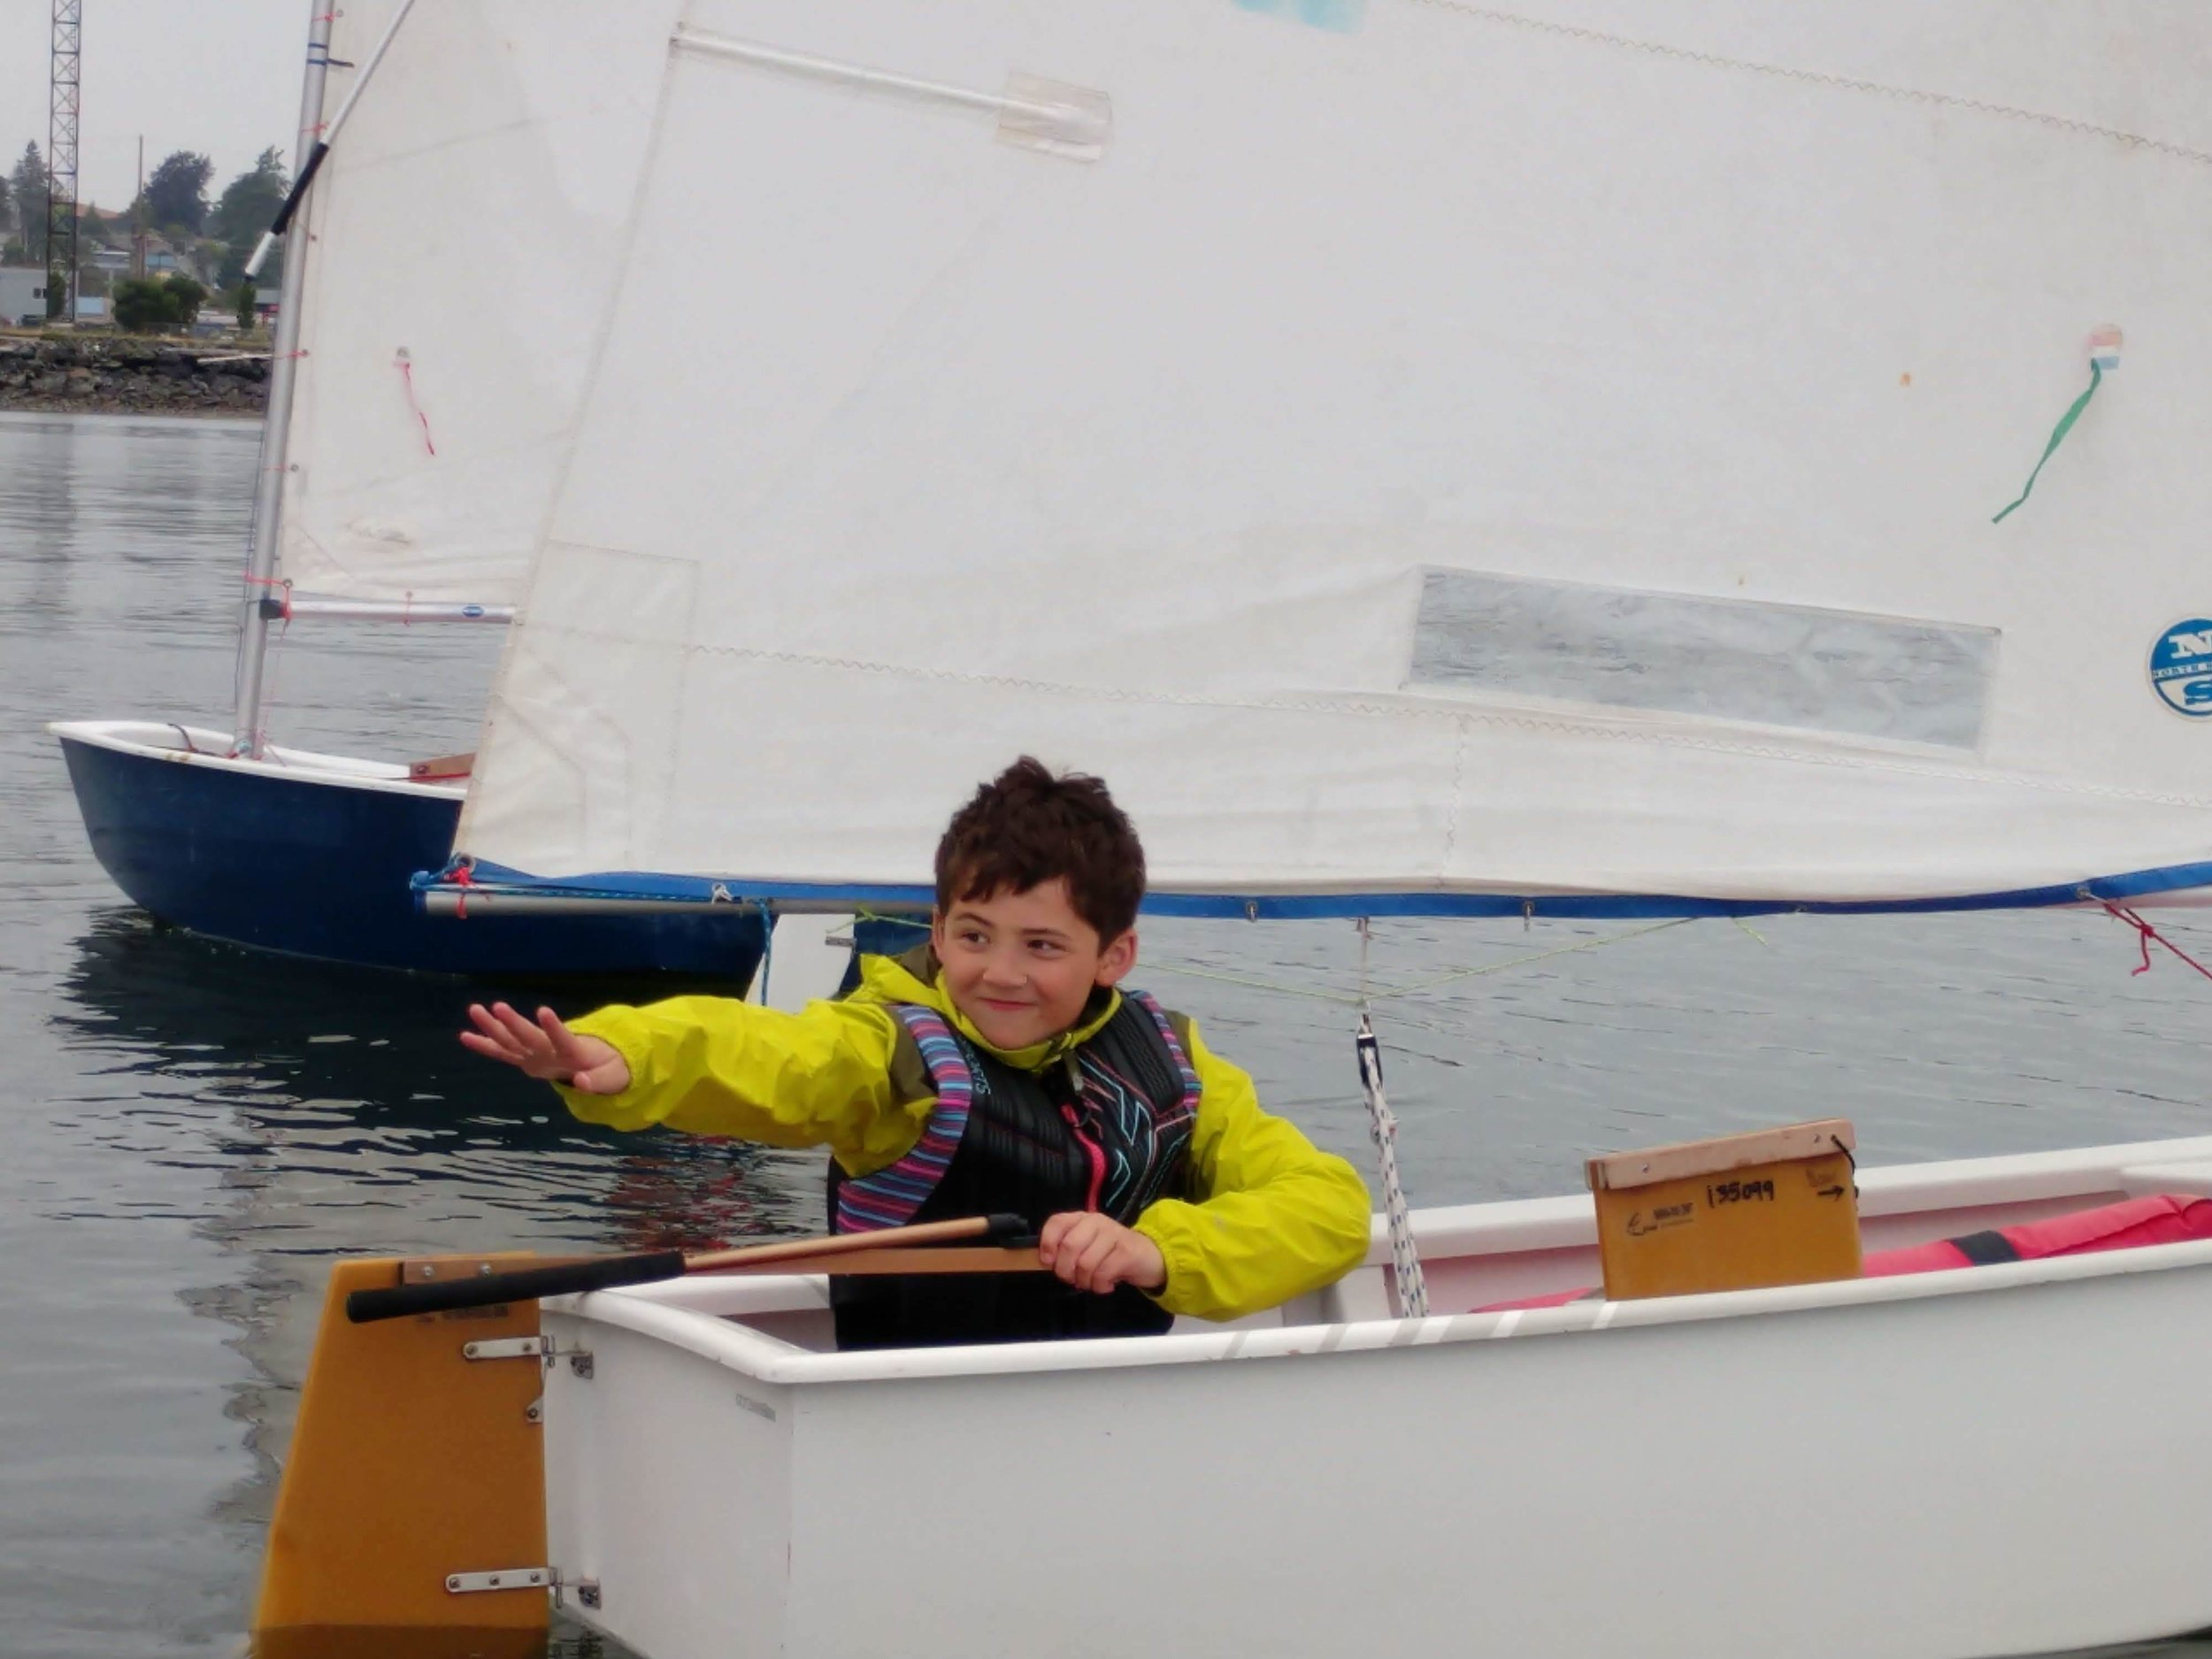 Youth Learn the fundamentals of sailing on beautiful Fidalgo bay